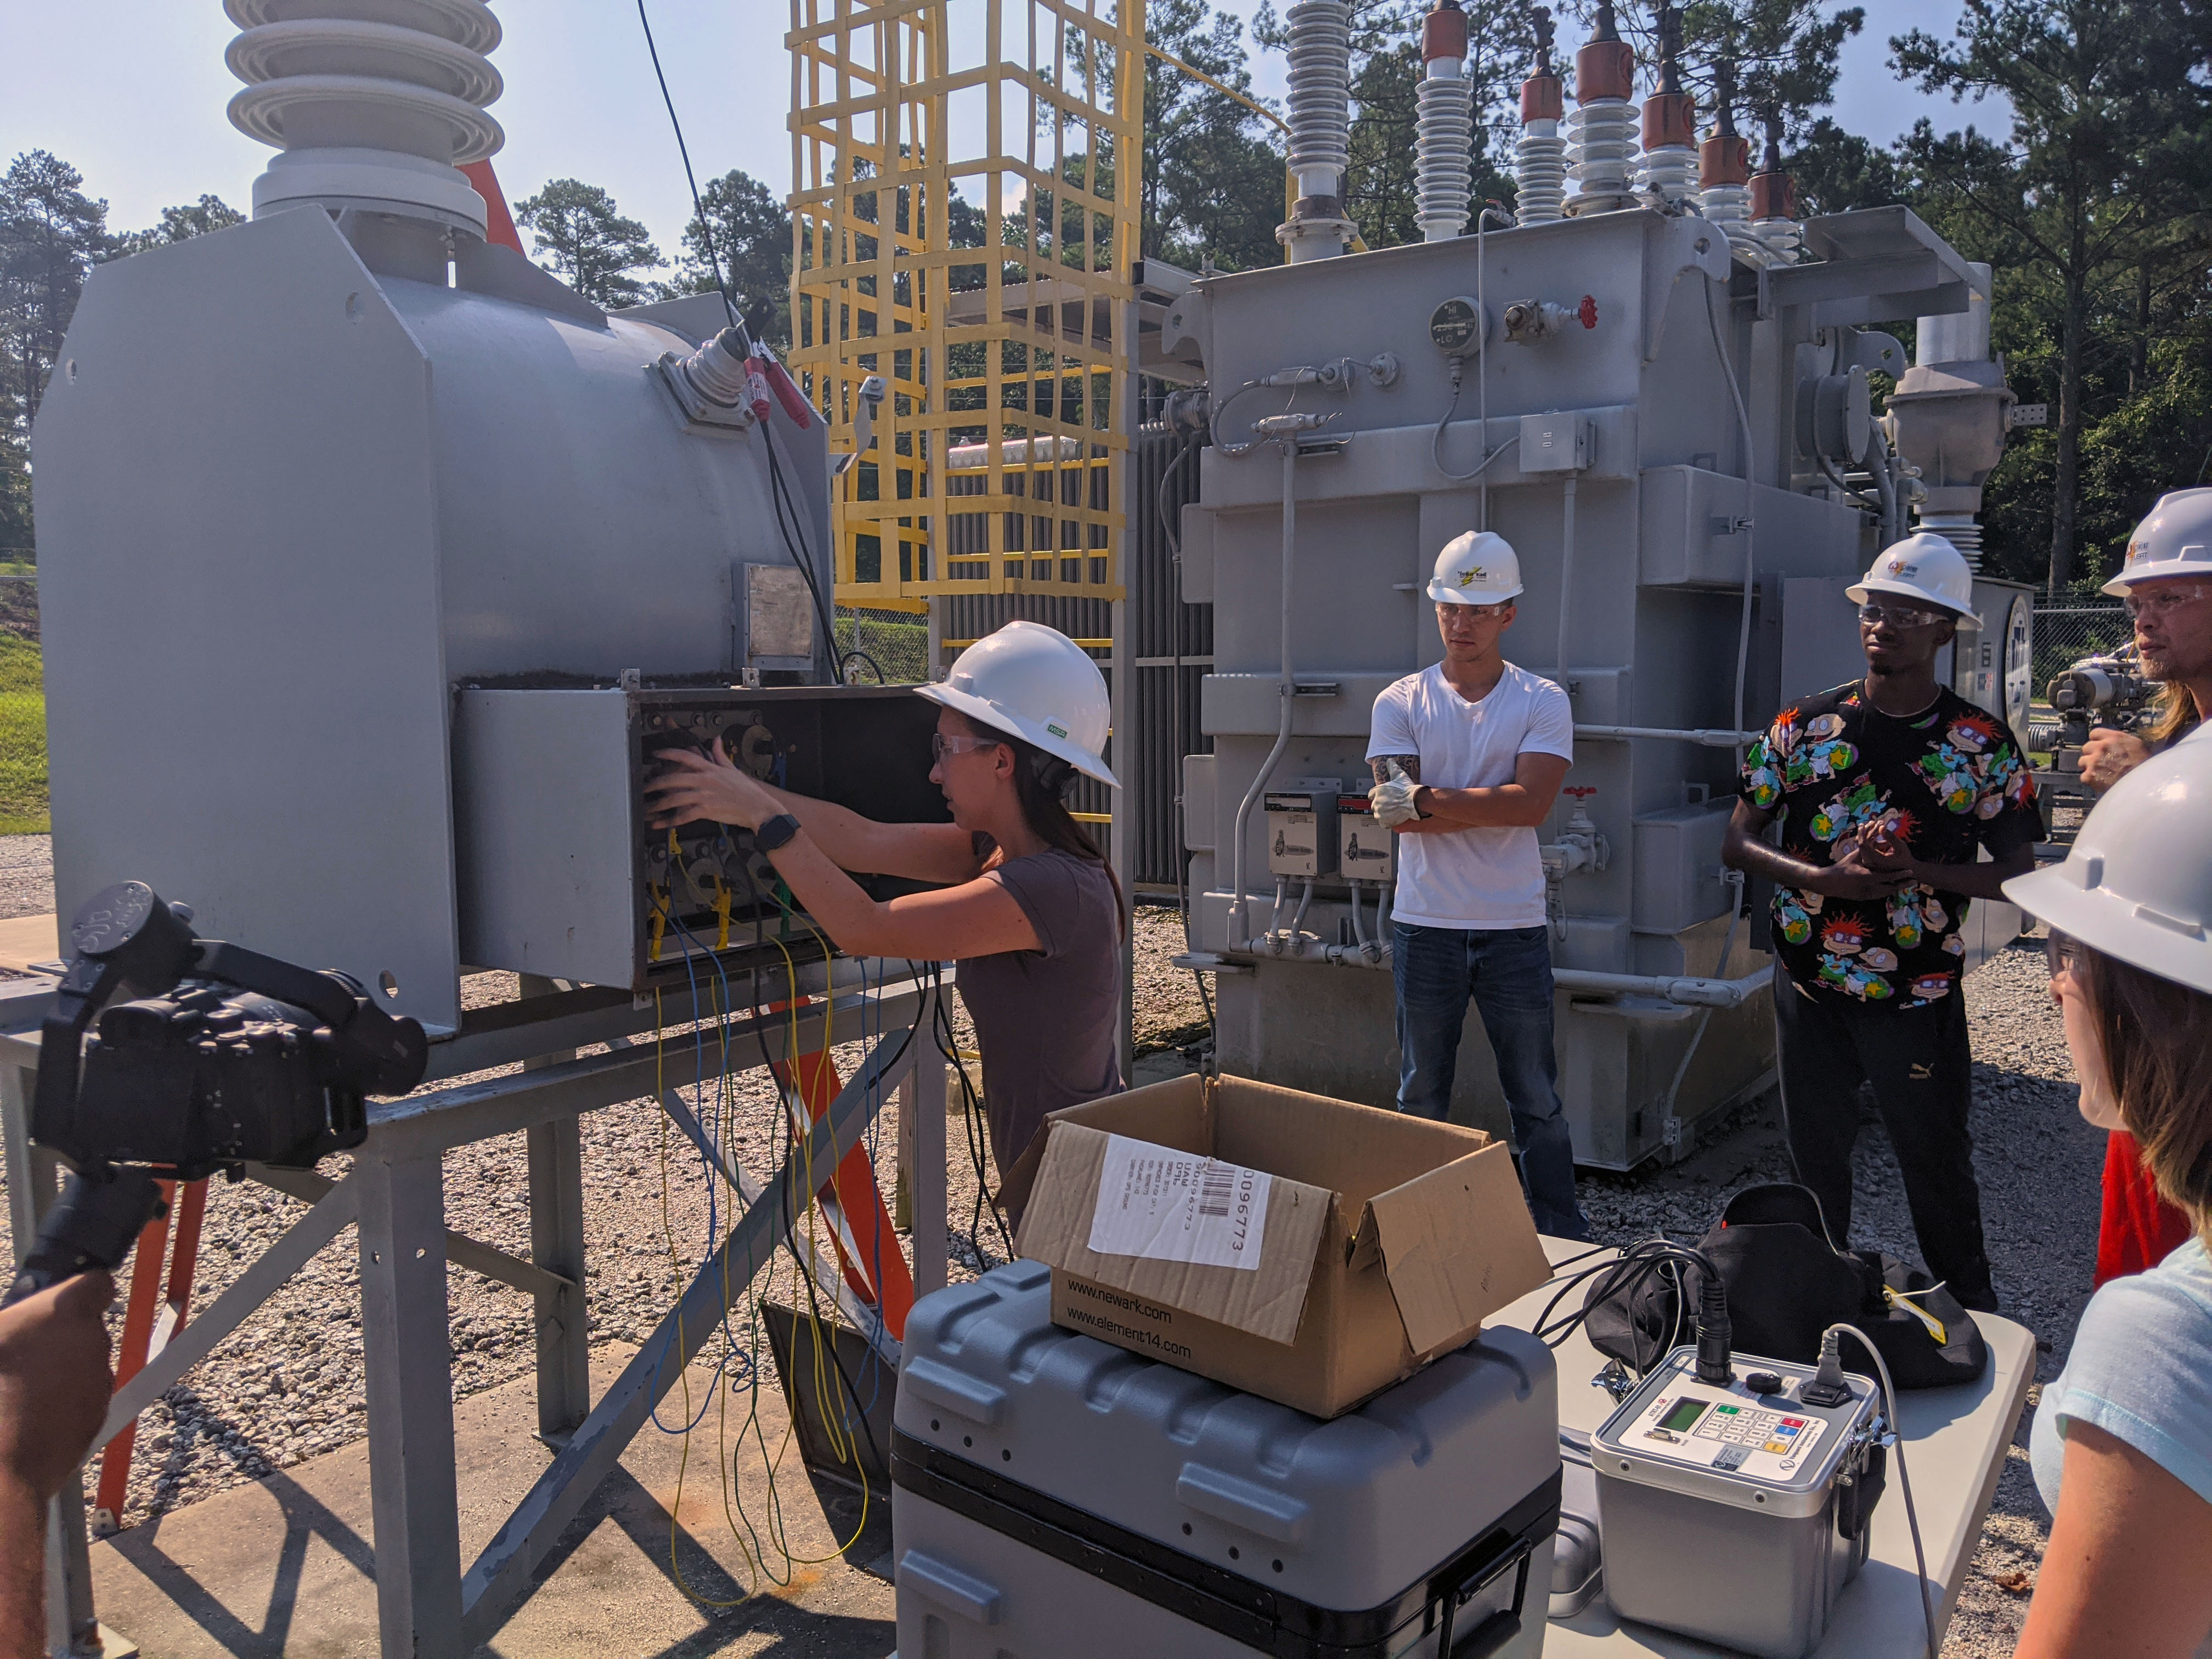 Students stand in the substation and work on testing equipment